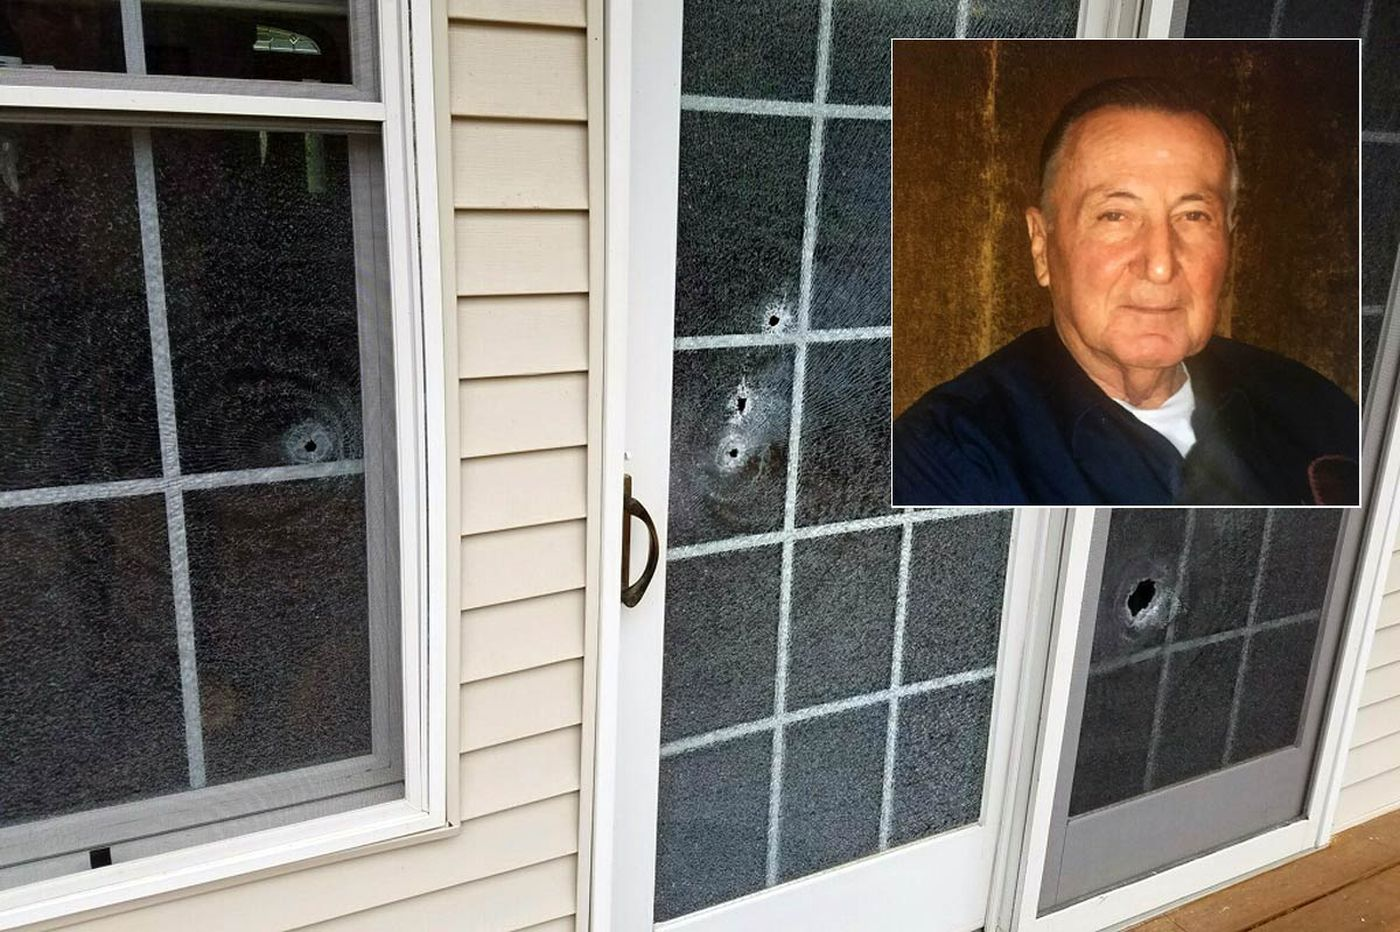 For man, 76, shot by N.J. trooper in 911 mix-up, 'whole thing is just unbelievable'